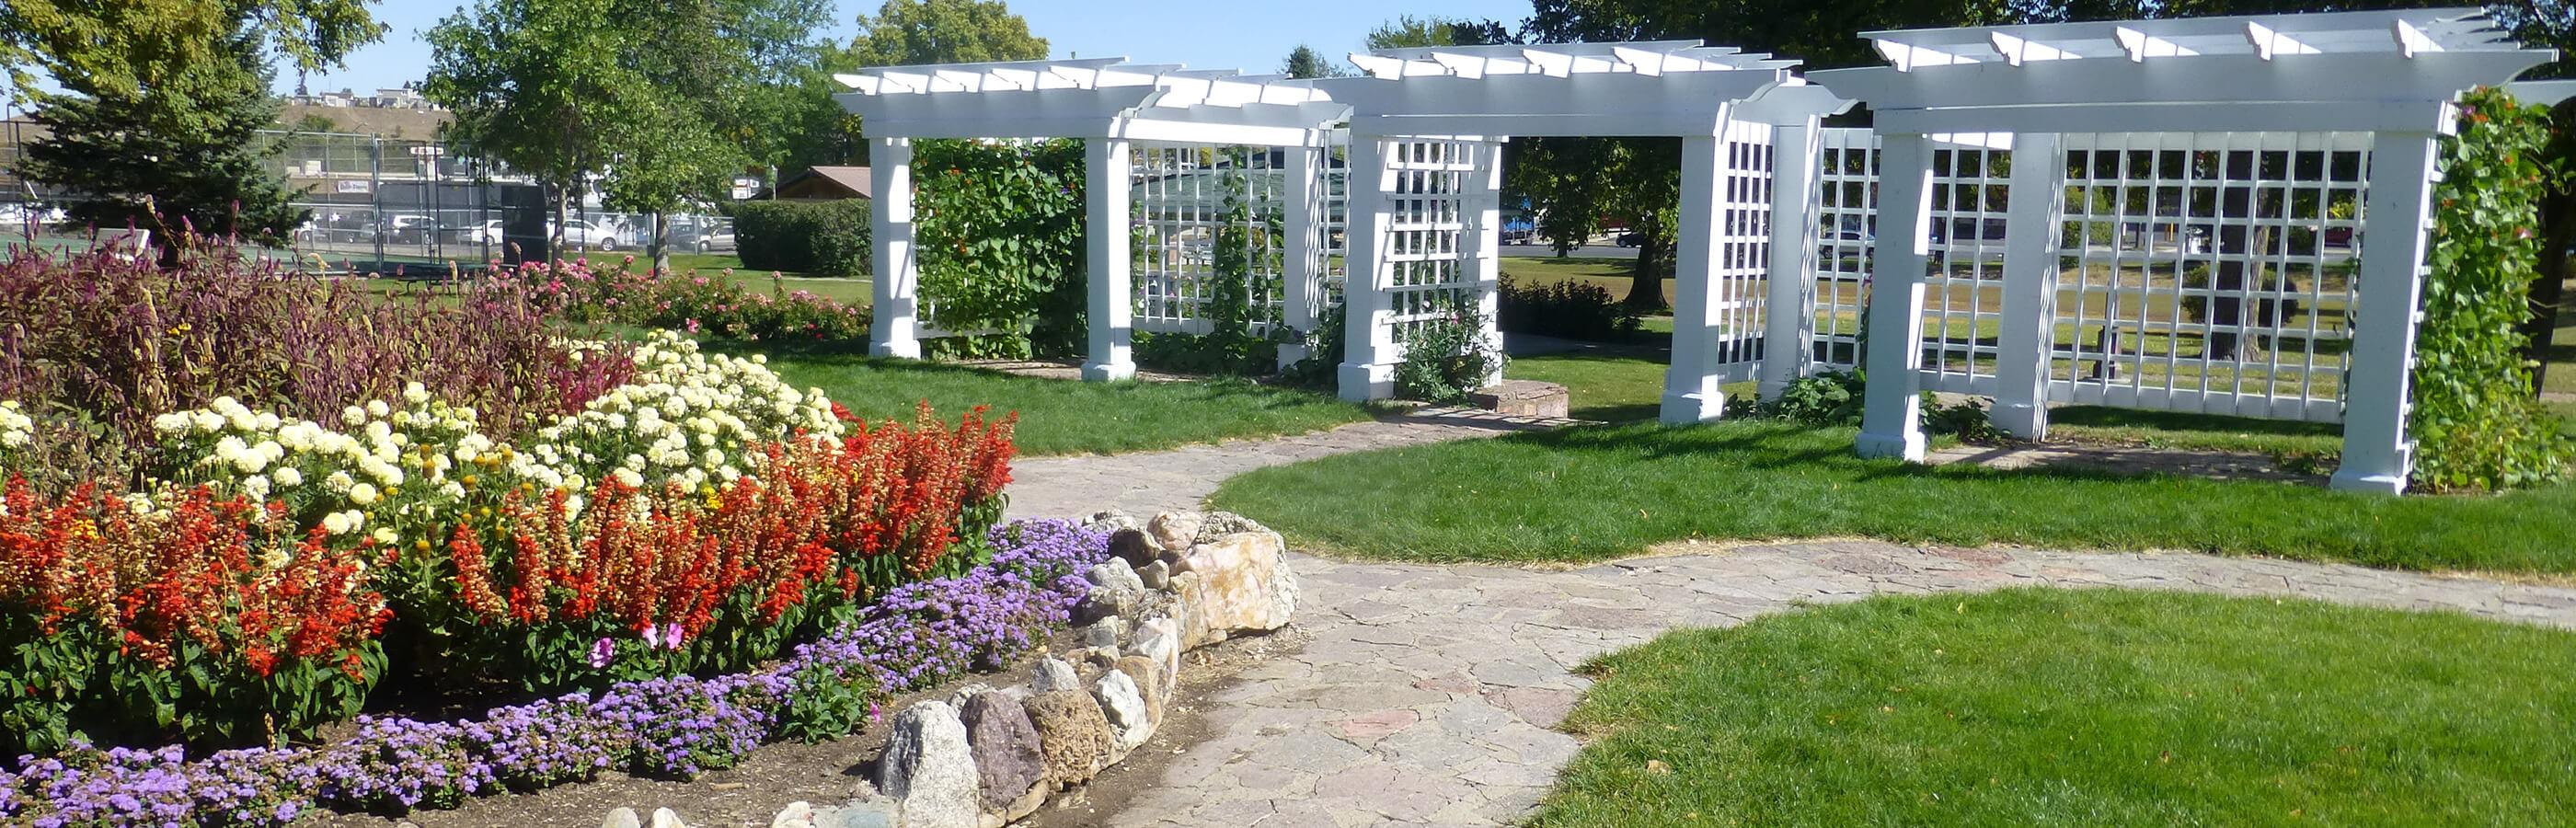 Flowers and Gazebos at Wilson Park